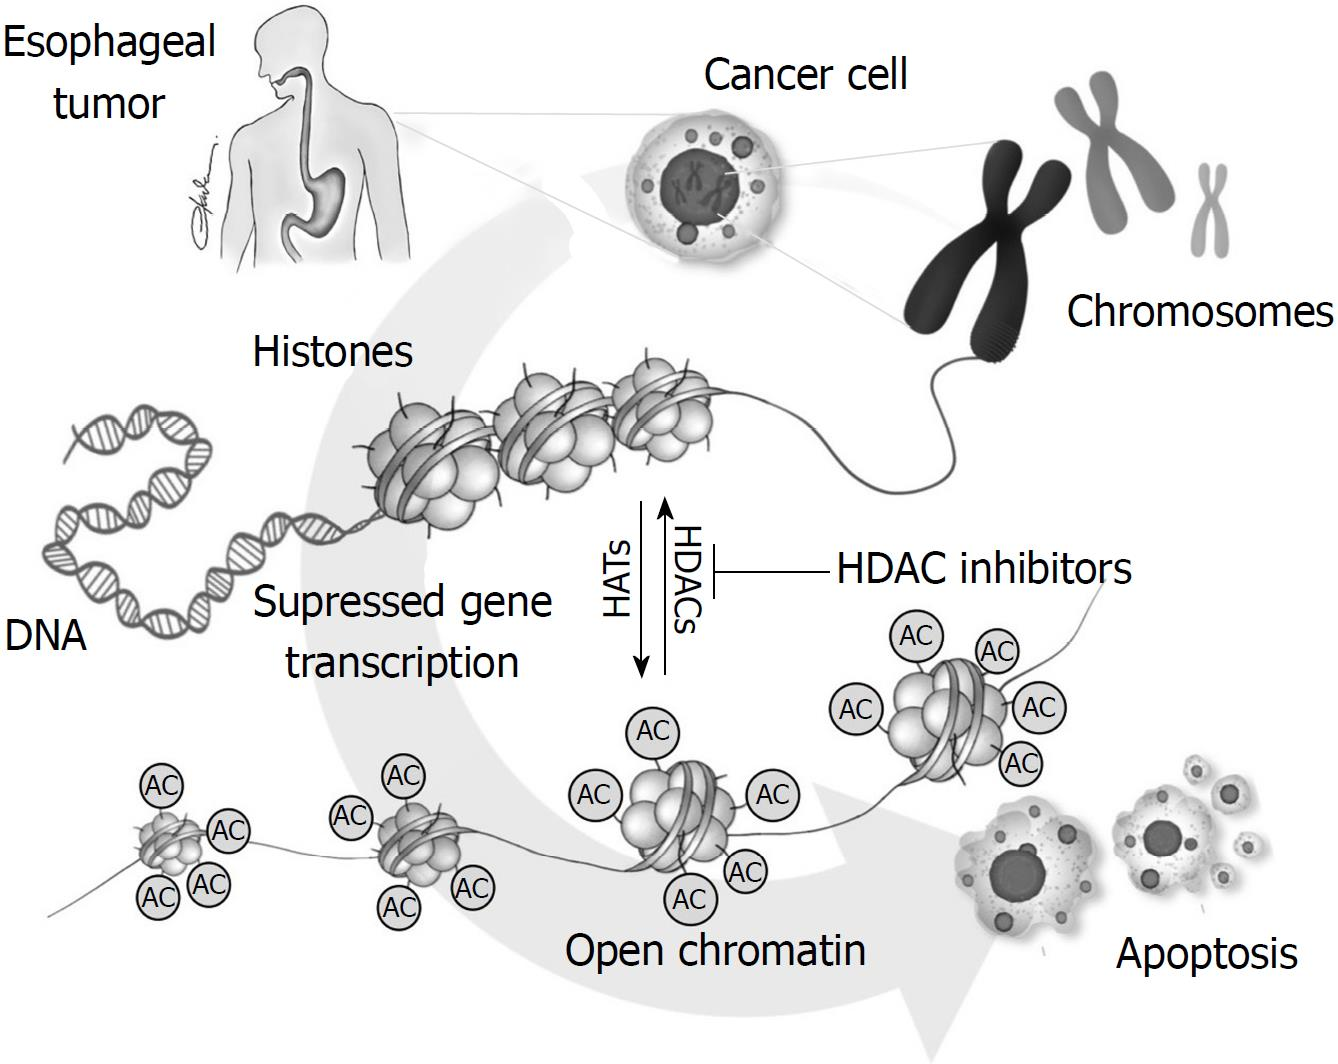 Concept of histone deacetylases in cancer: Reflections on